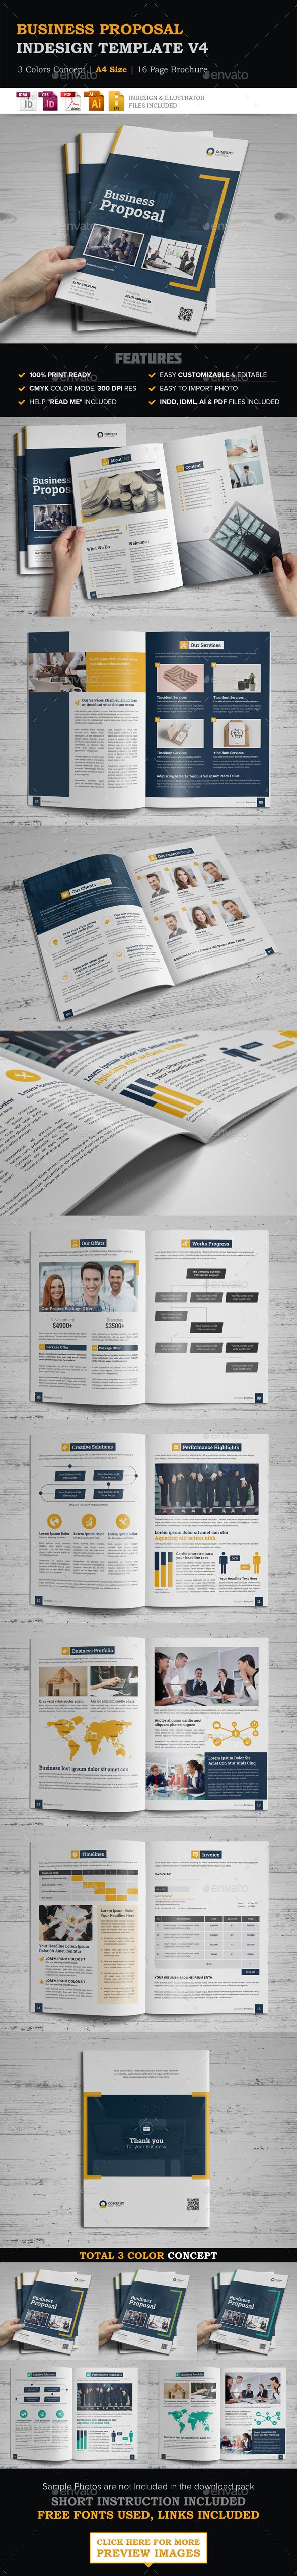 Buy Business Proposal InDesign Template by JanySultana